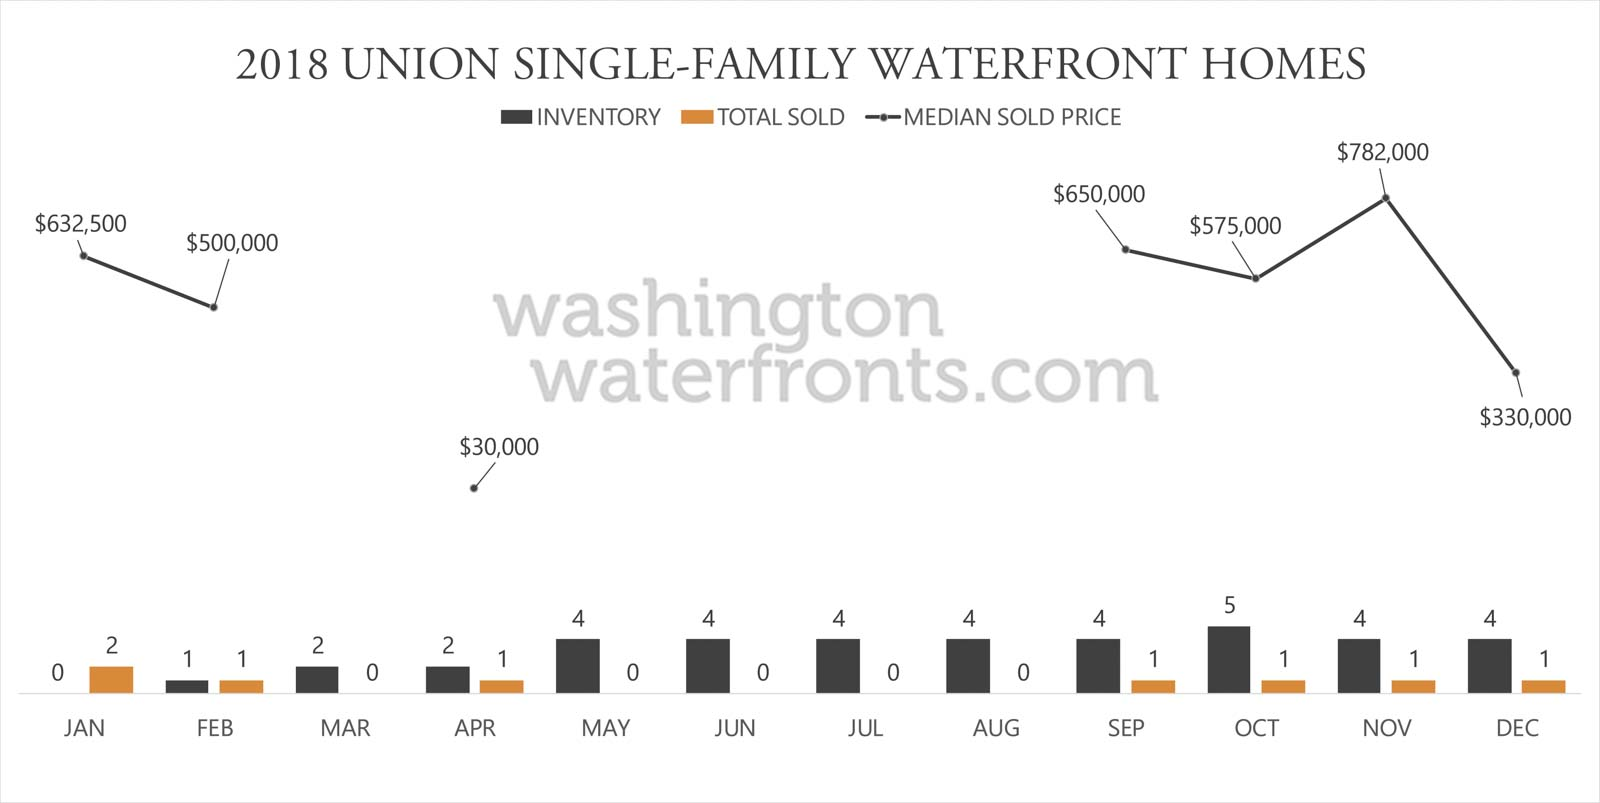 Union Waterfront Inventory